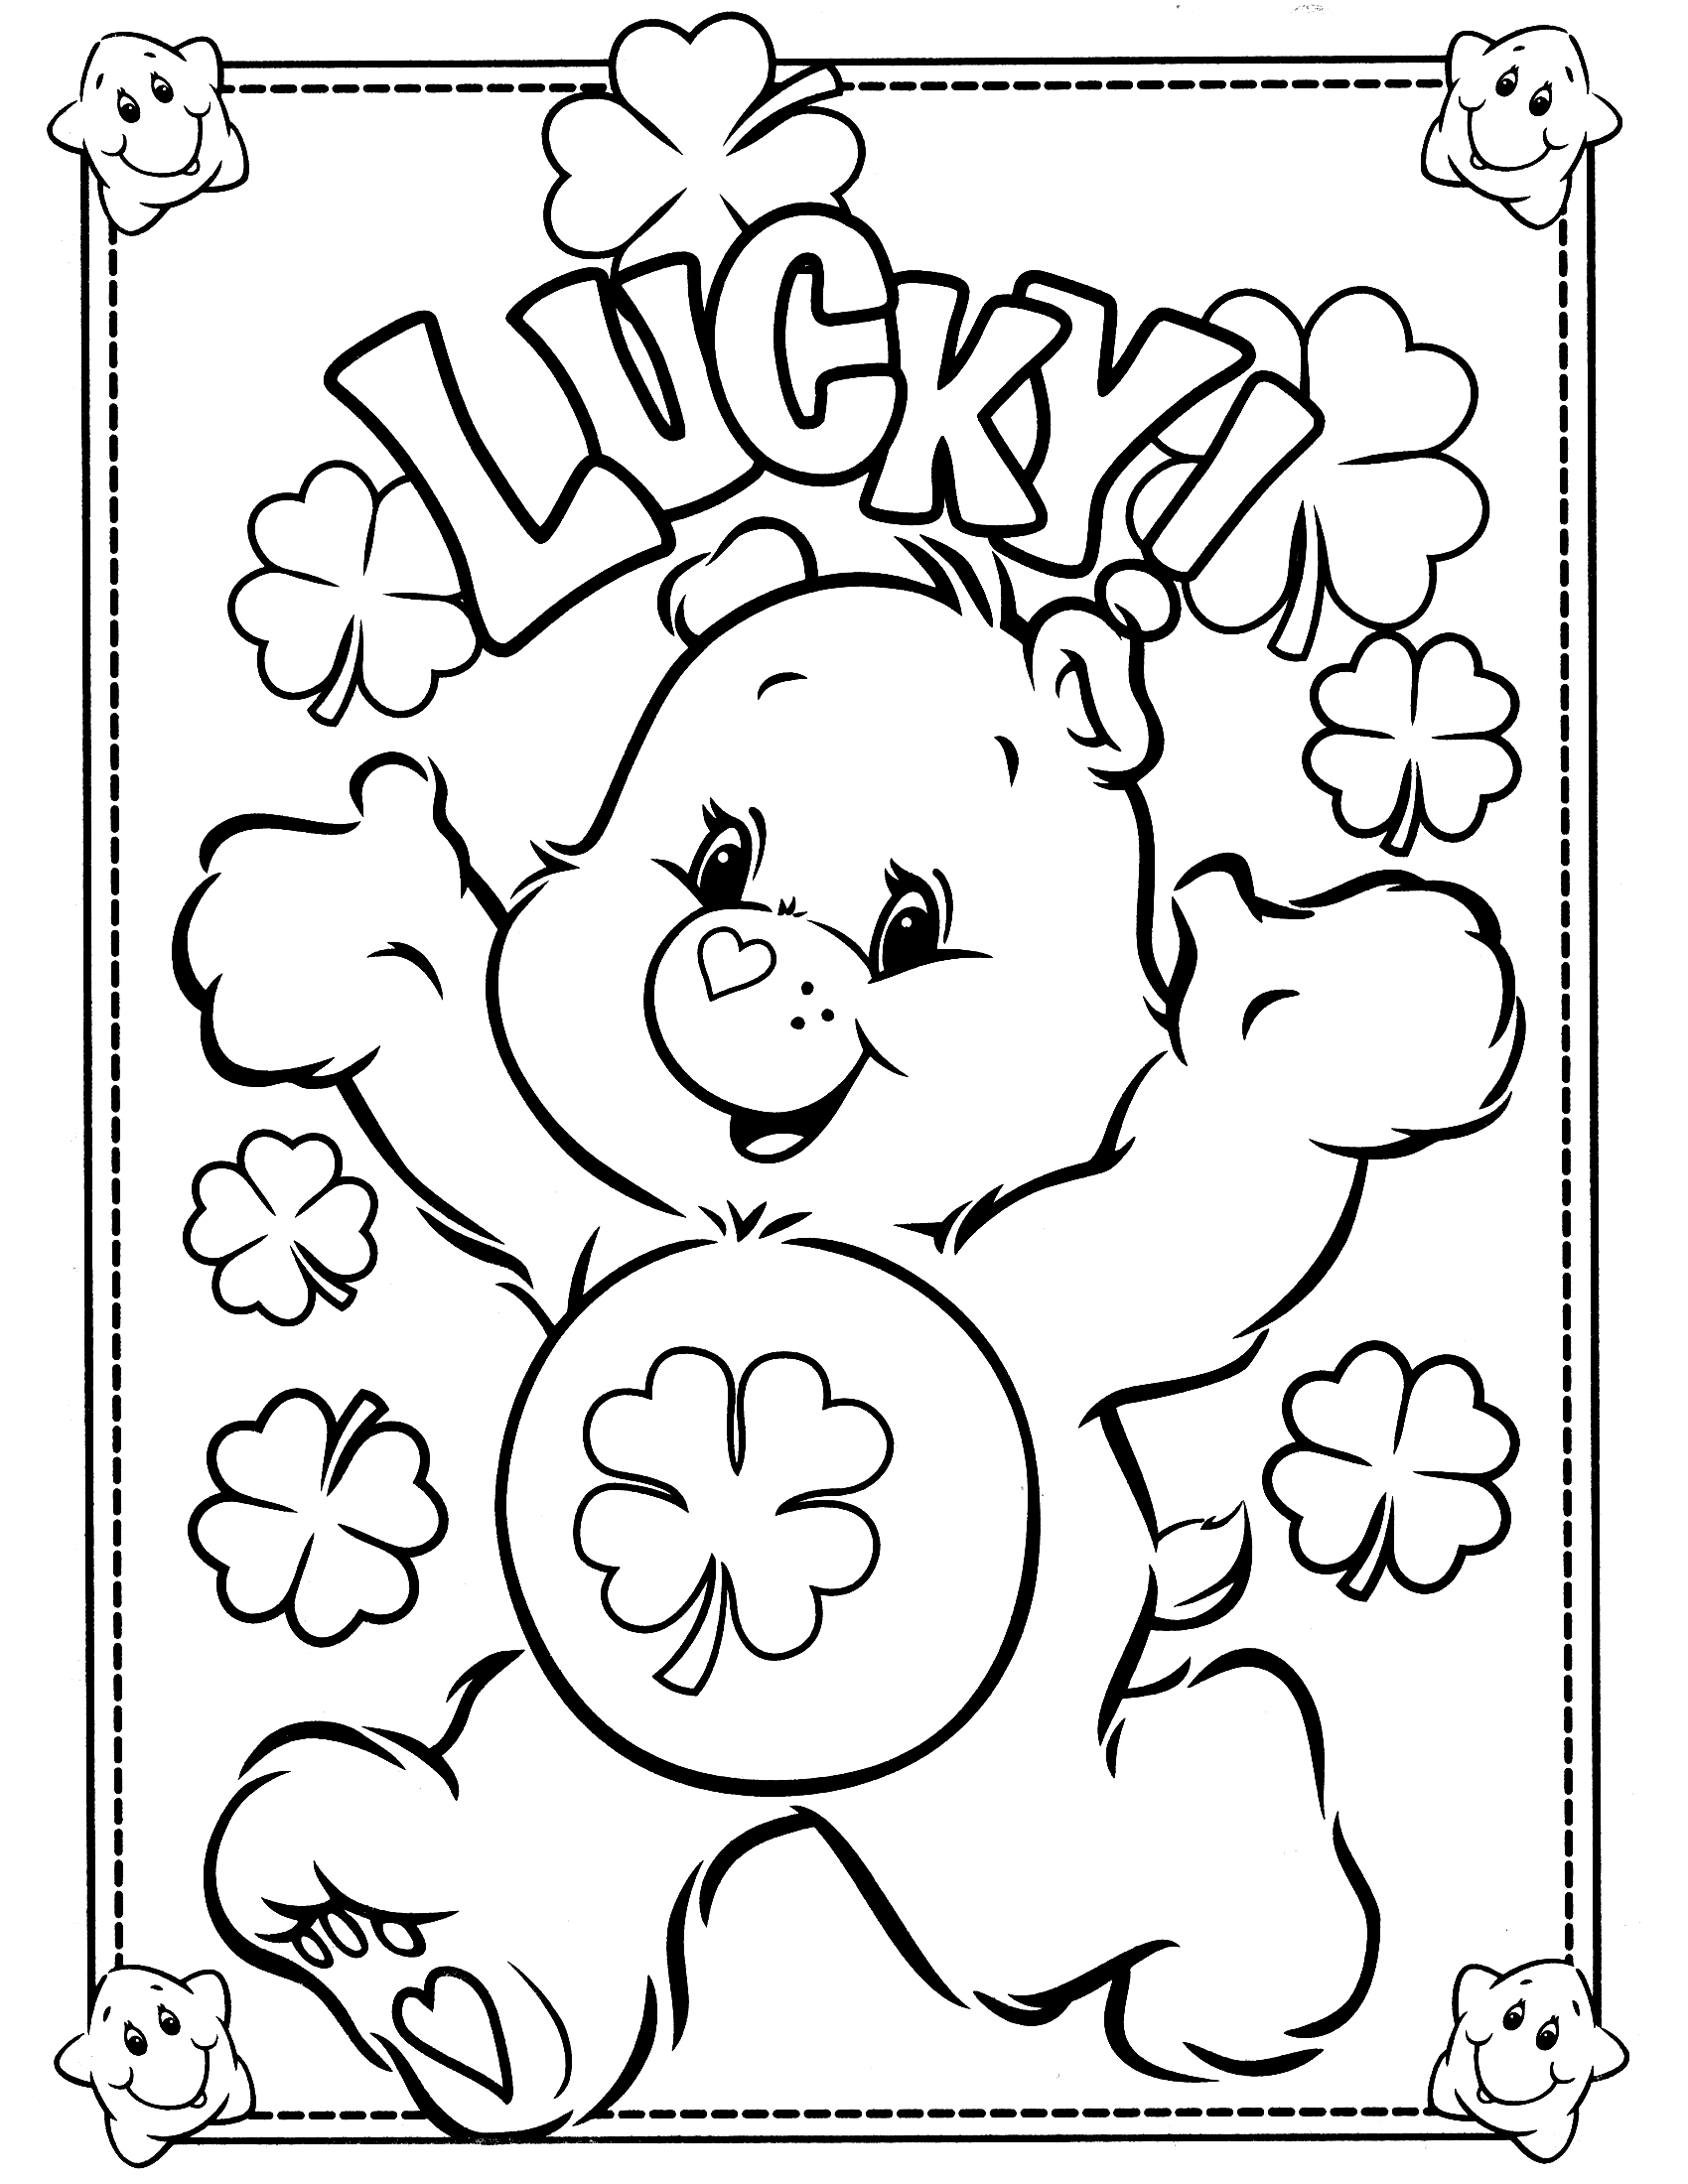 coloring pages of bears to print grizzly bear coloring pages kidsuki to print coloring bears of pages